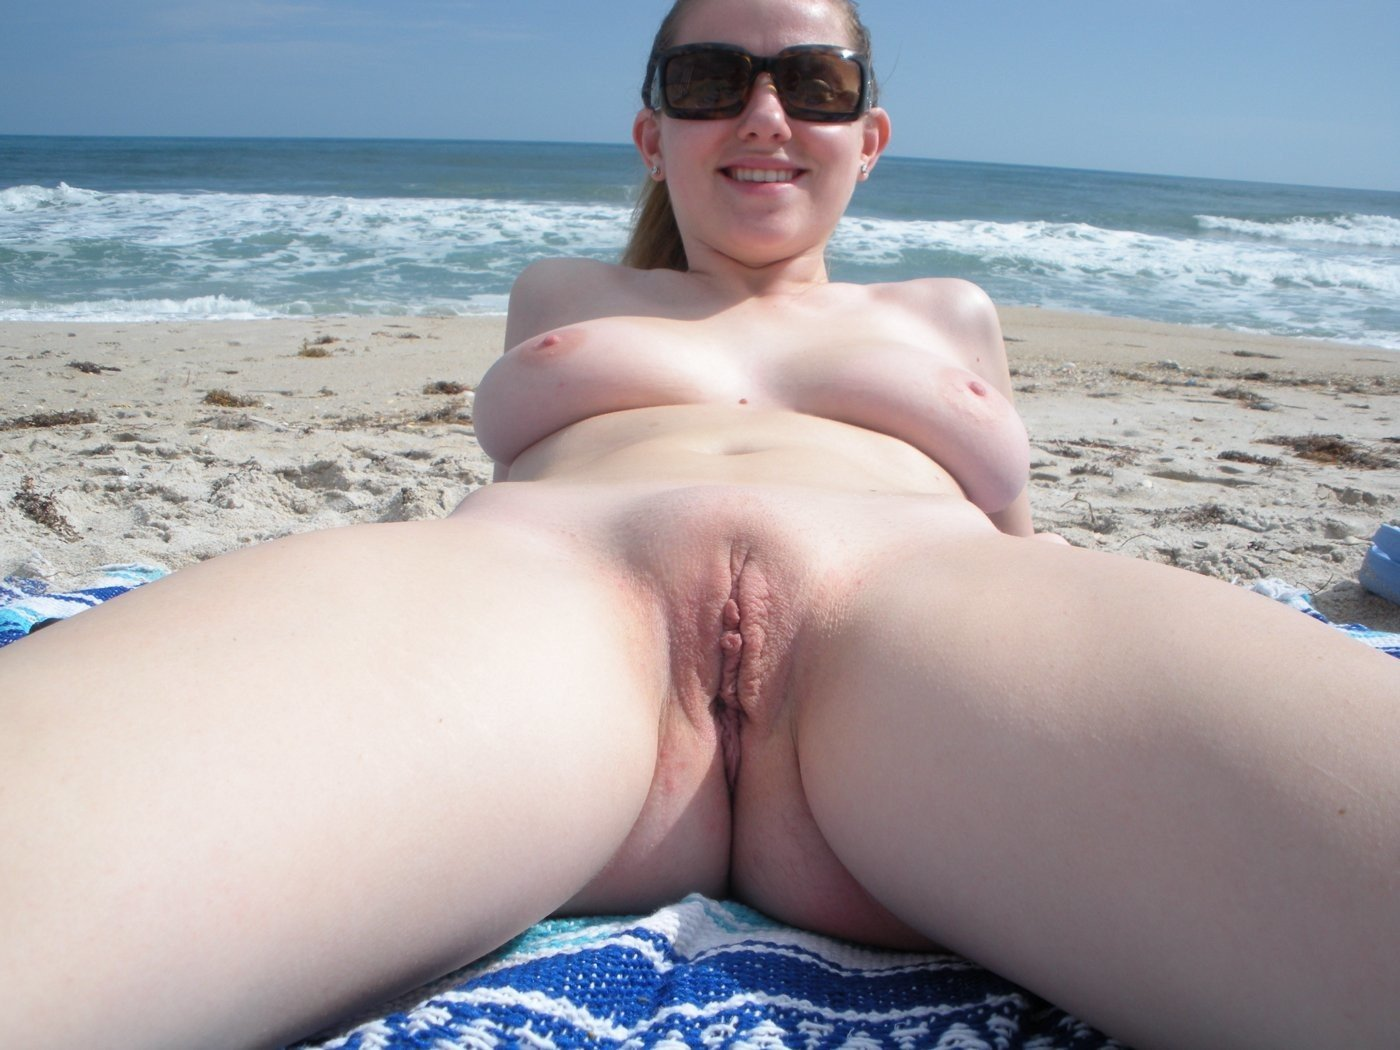 Amateur mature nudist handjob